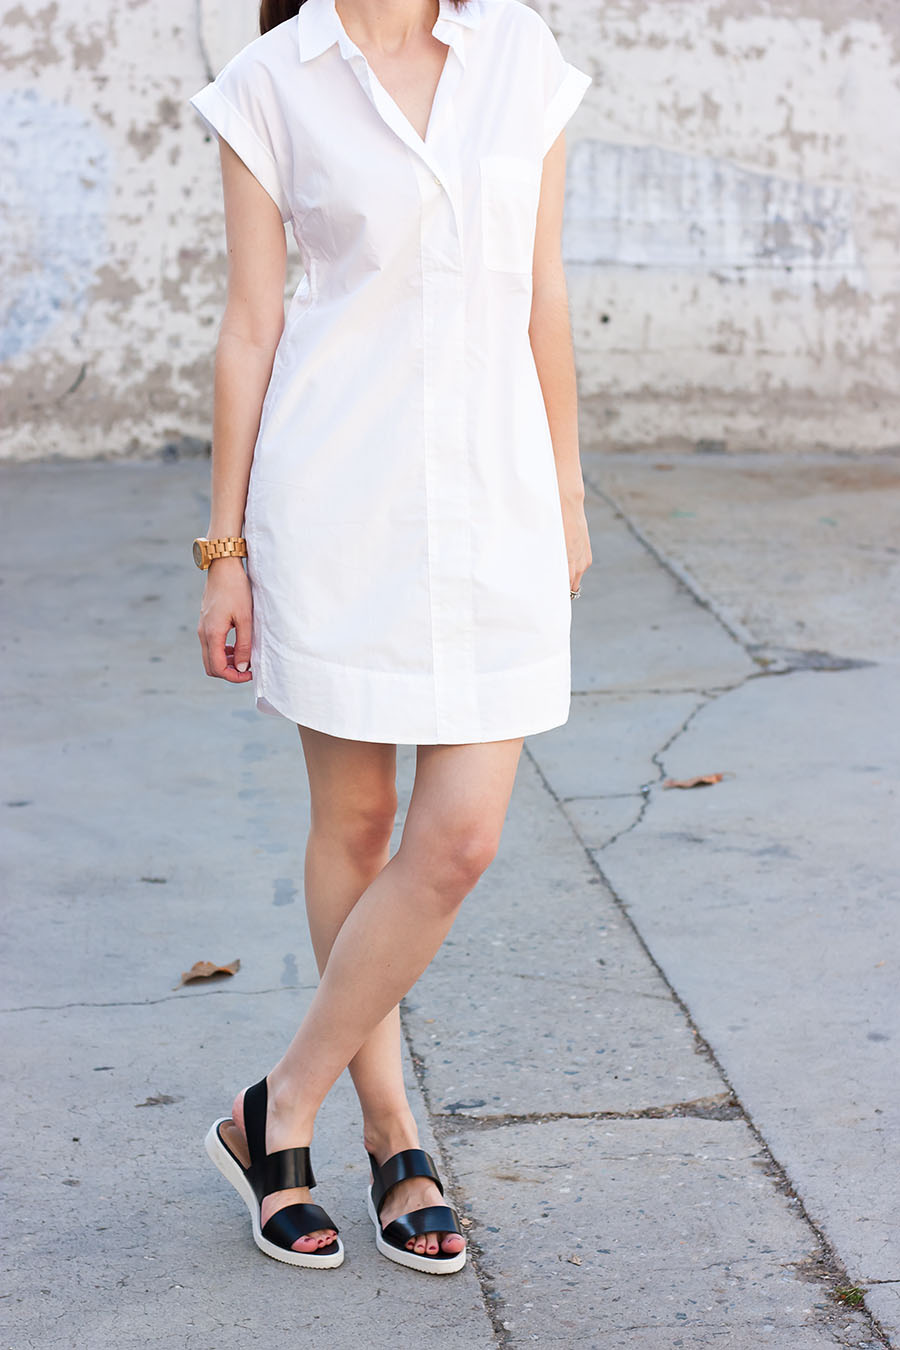 White Popover Shirtdress, Everlane Street Sandal, Jord Watch